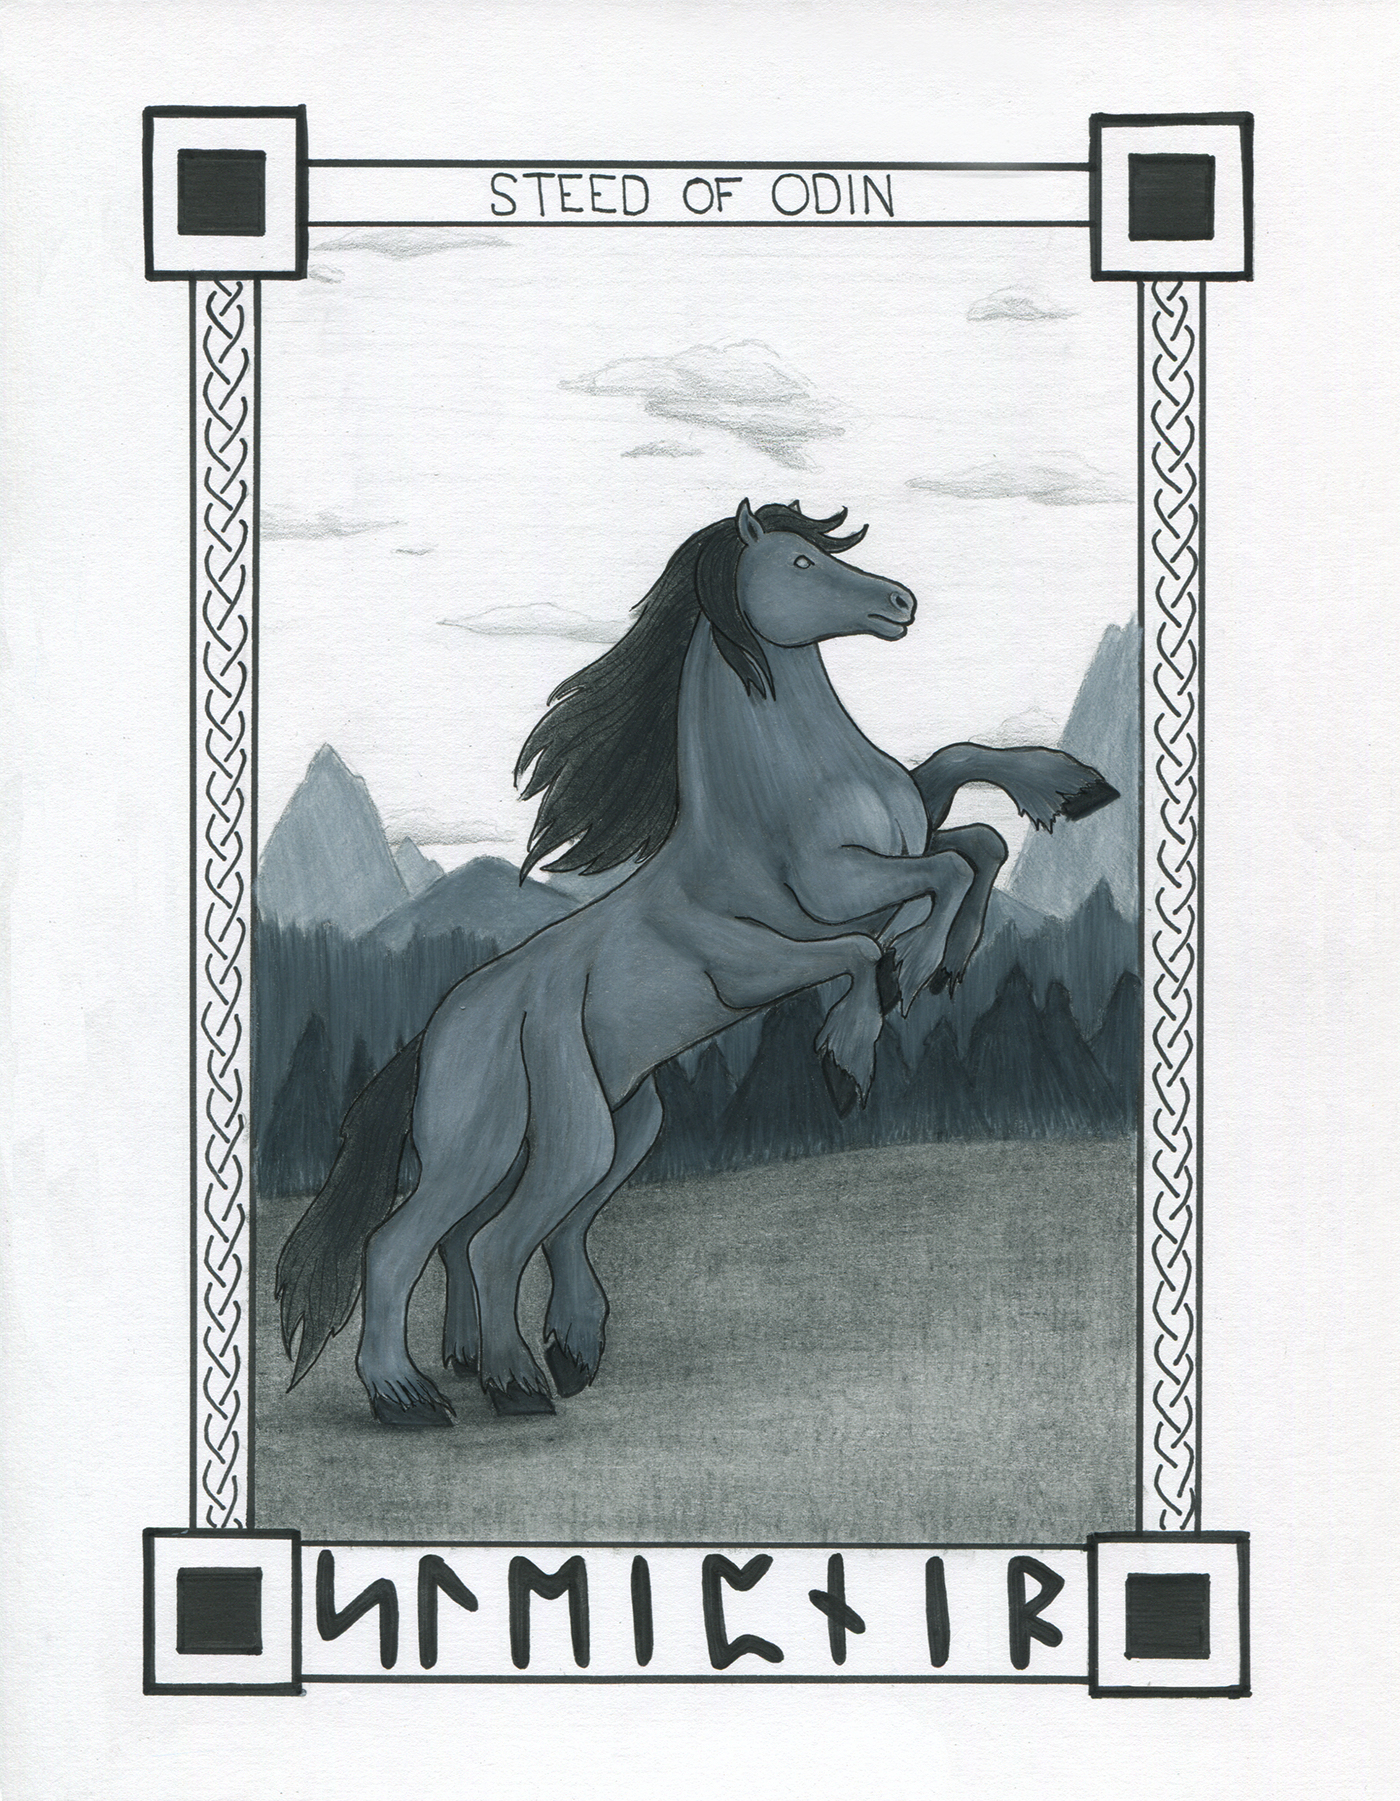 A scanned image of the Sleipnir illustration